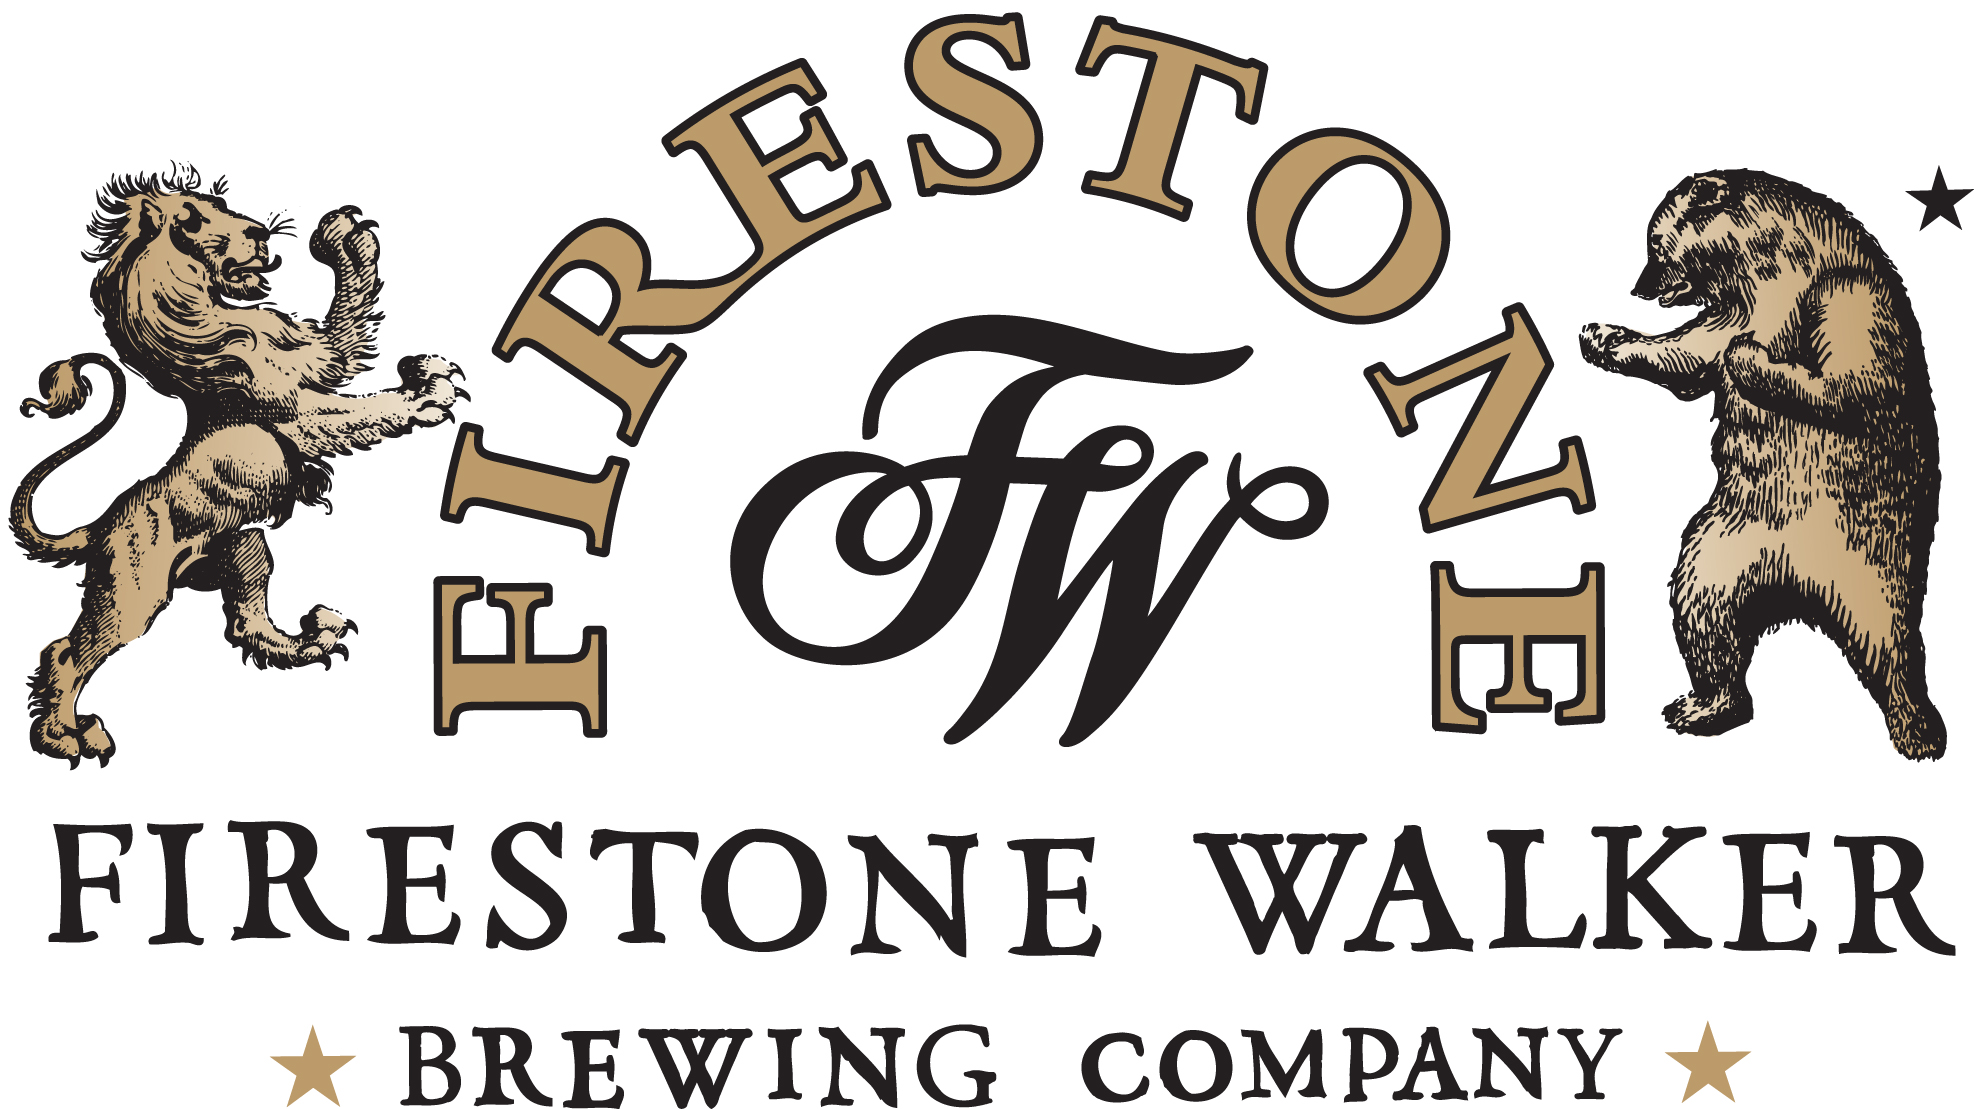 Firestone-Walker Brewing Company - Paso Robles, CA   Founded in 1996 by Adam Firestone (aka the Bear) & David Walker (aka the Lion), Firestone Walker Brewing Company began as a small brewery with roots in wine country on California's Central Coast. Now a regional brewery, our singular purpose remains – to craft ever better beer.  Passionately in pursuit of the perfect beer…and never satisfied.